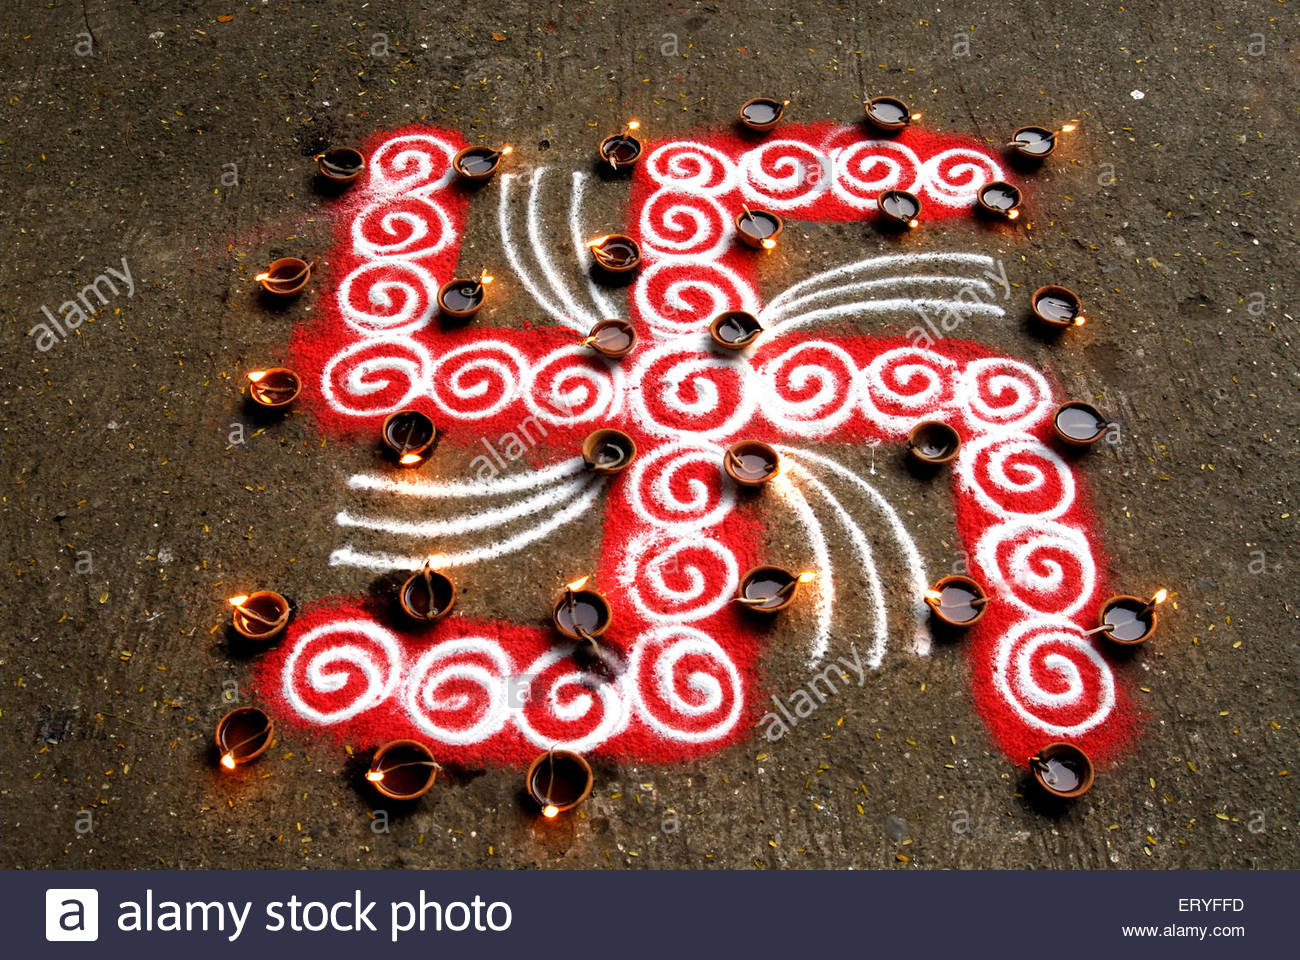 Rangoli floor design with swastik and lighted clay lamps during diwali deepawali festival 2009 Stock Photo